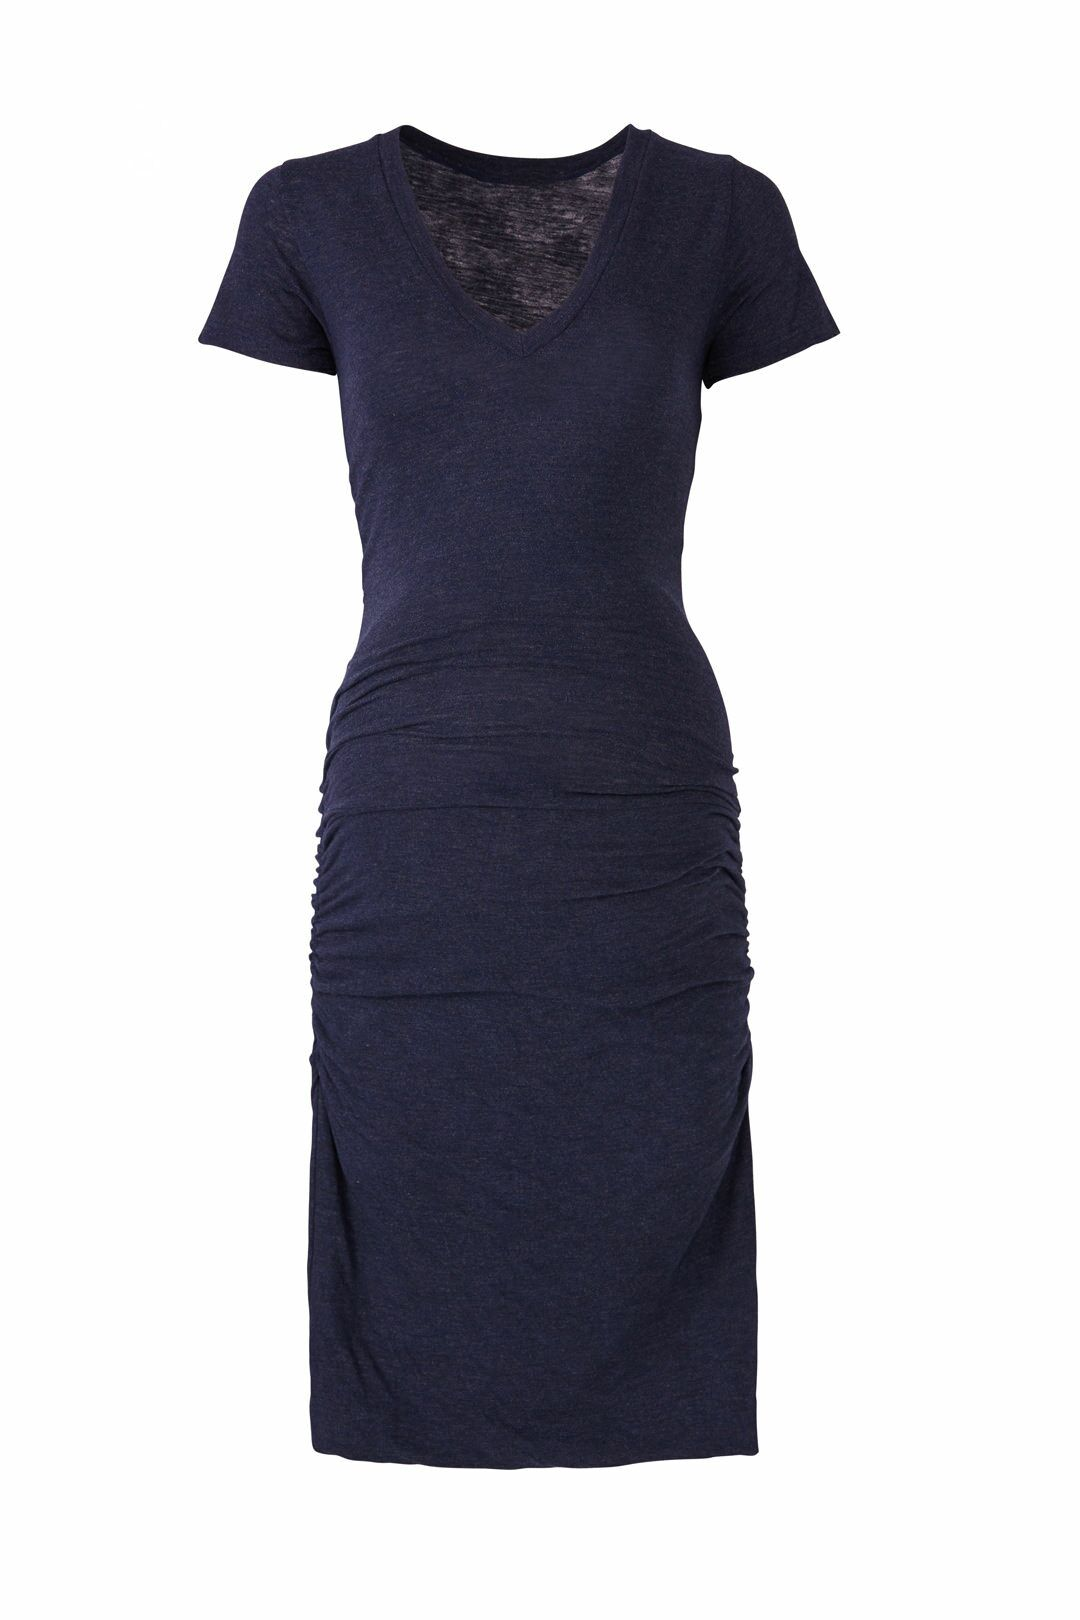 Navy Short Sleeve Maternity Dress